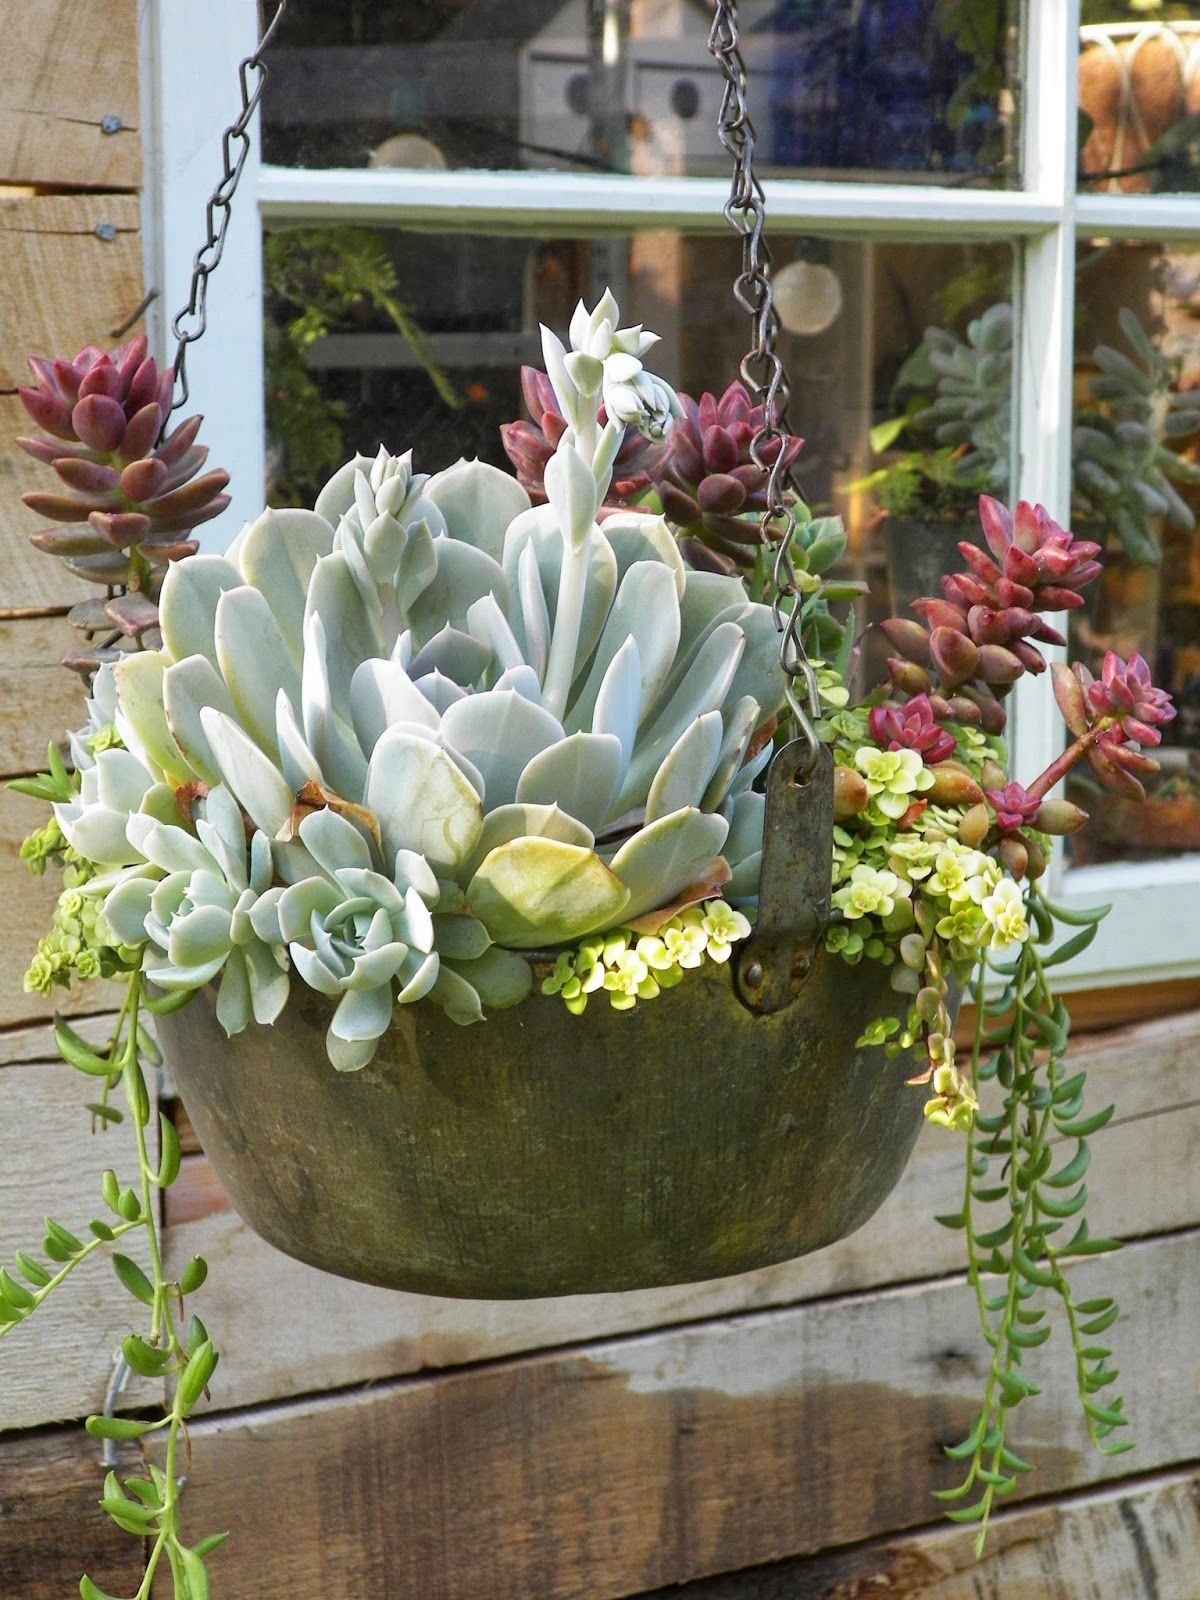 #succulents, container garden, gardenjunk, hanging baskets, I Love My Garden: Oh man, I'm so ready.